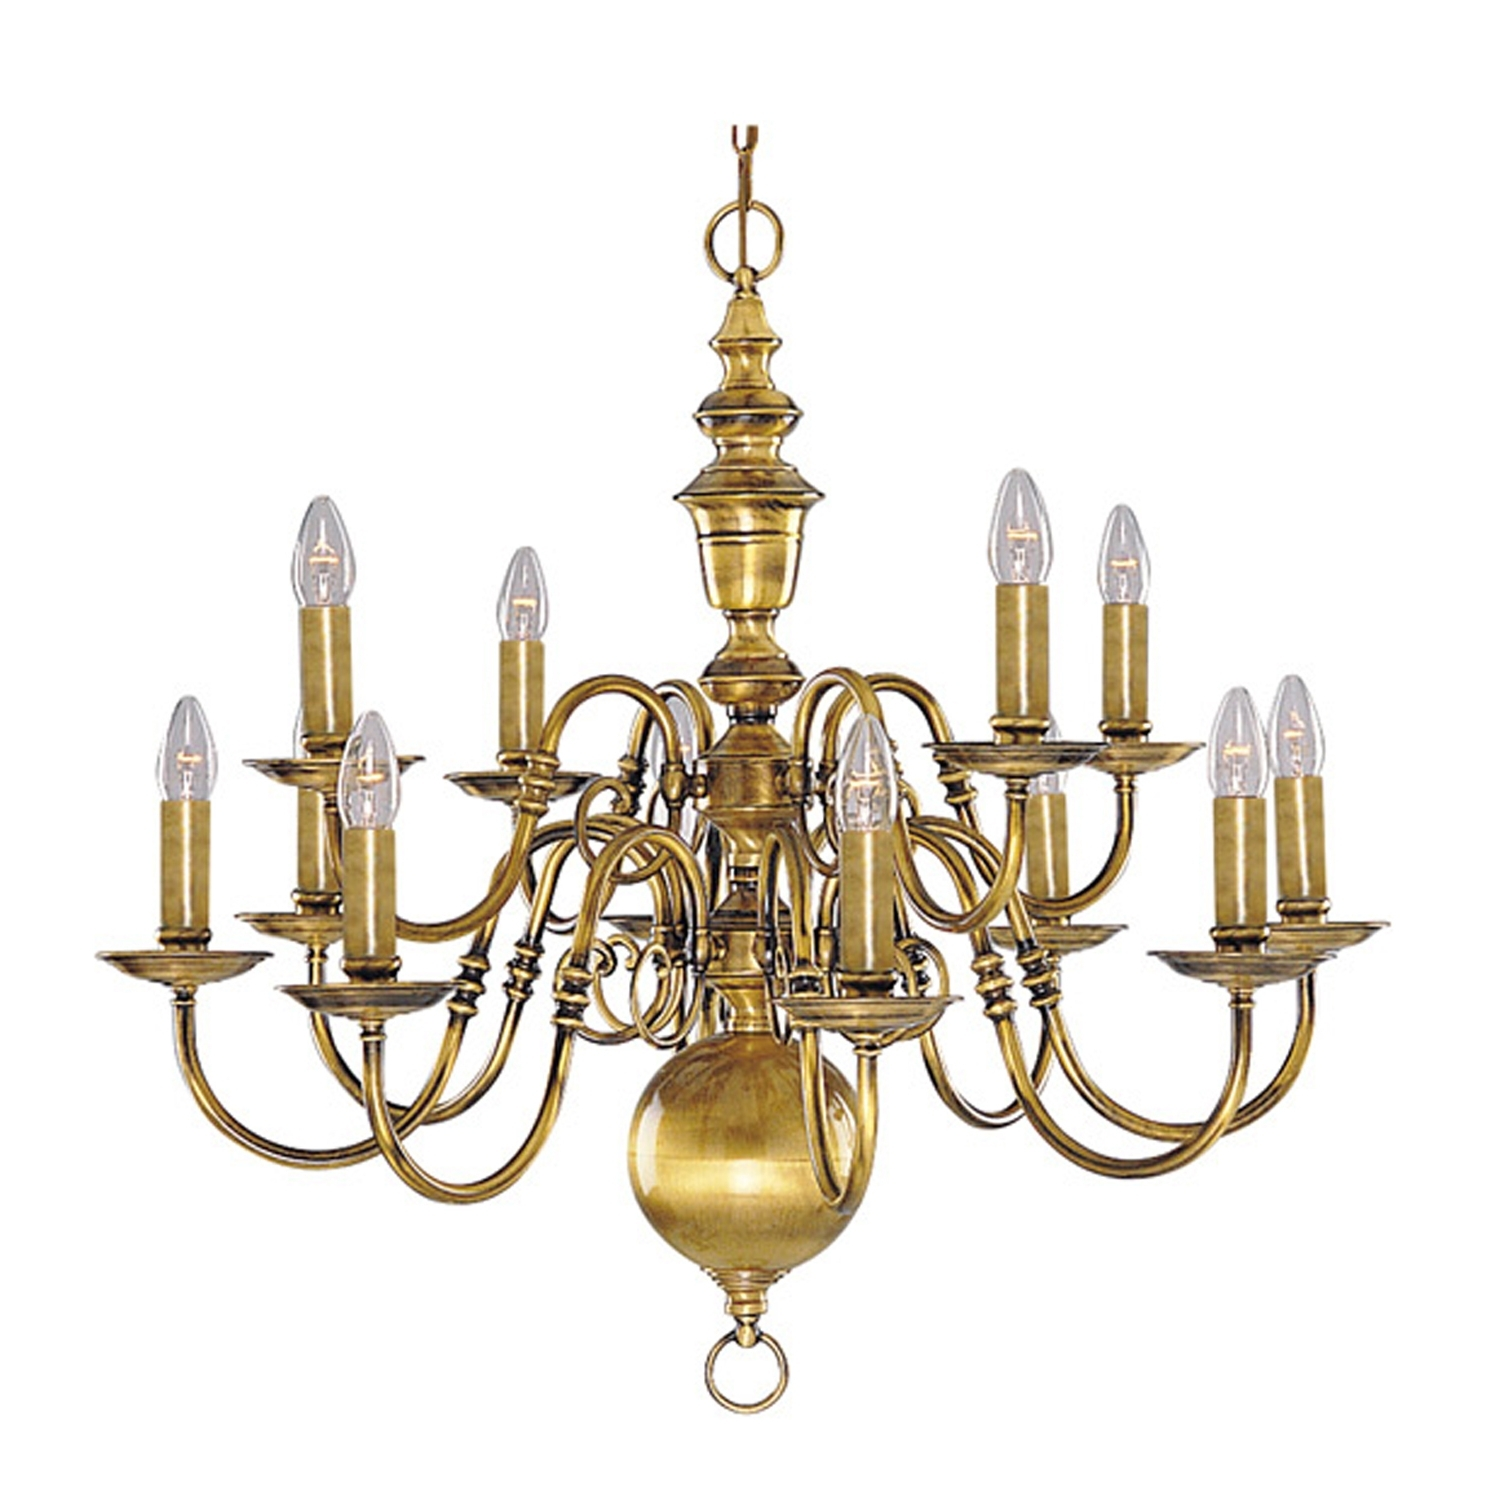 Well Known Old Brass Chandeliers Intended For Chandeliers Design : Wonderful Interesting Antique Brass Chandelier (View 6 of 20)